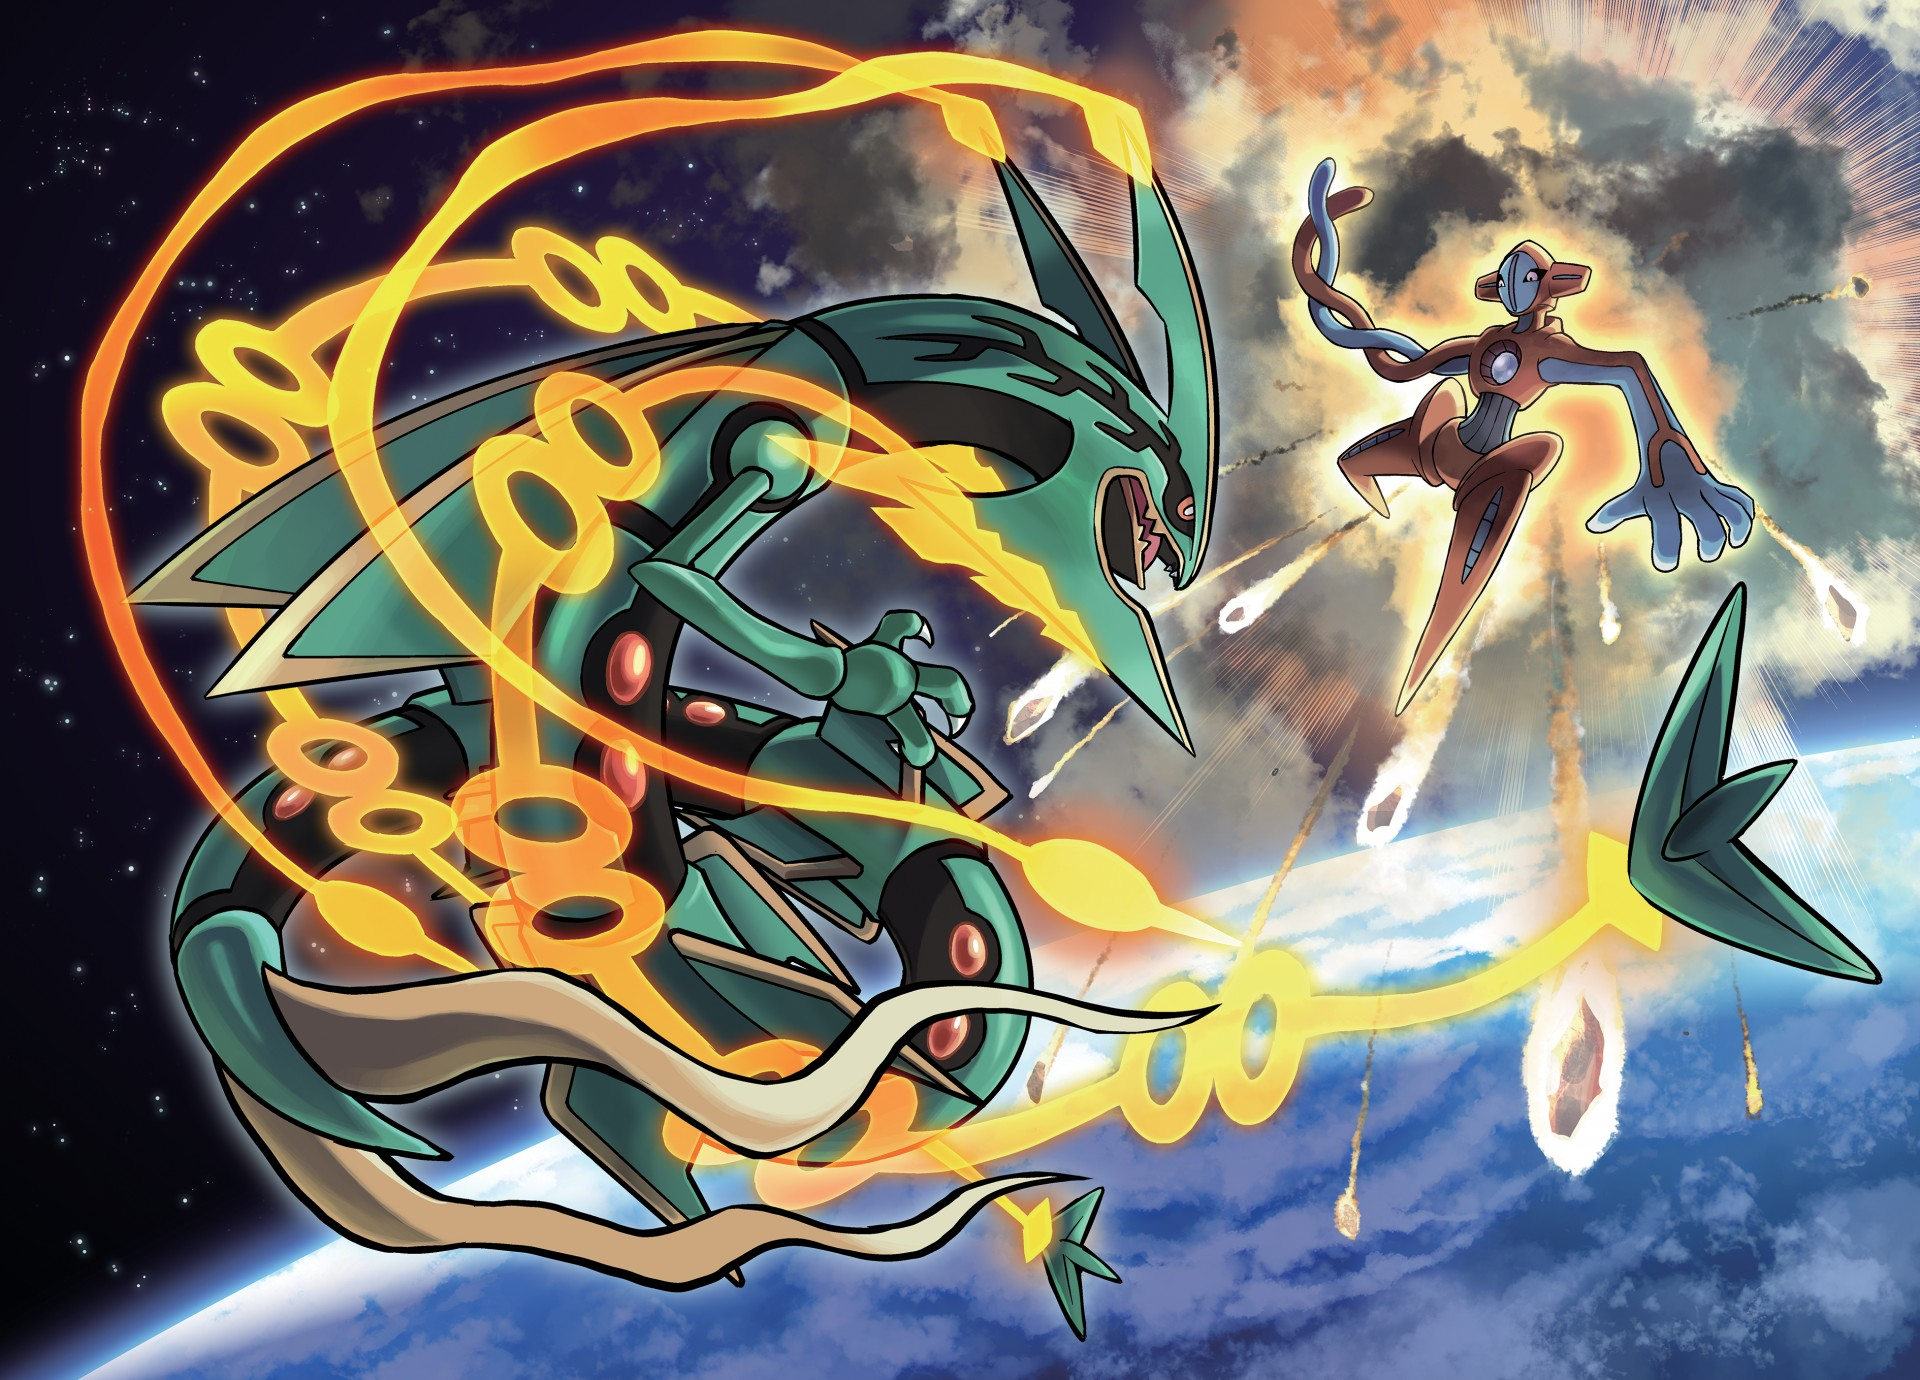 Deoxys Vs Rayquaza The Delta Episode Announced For